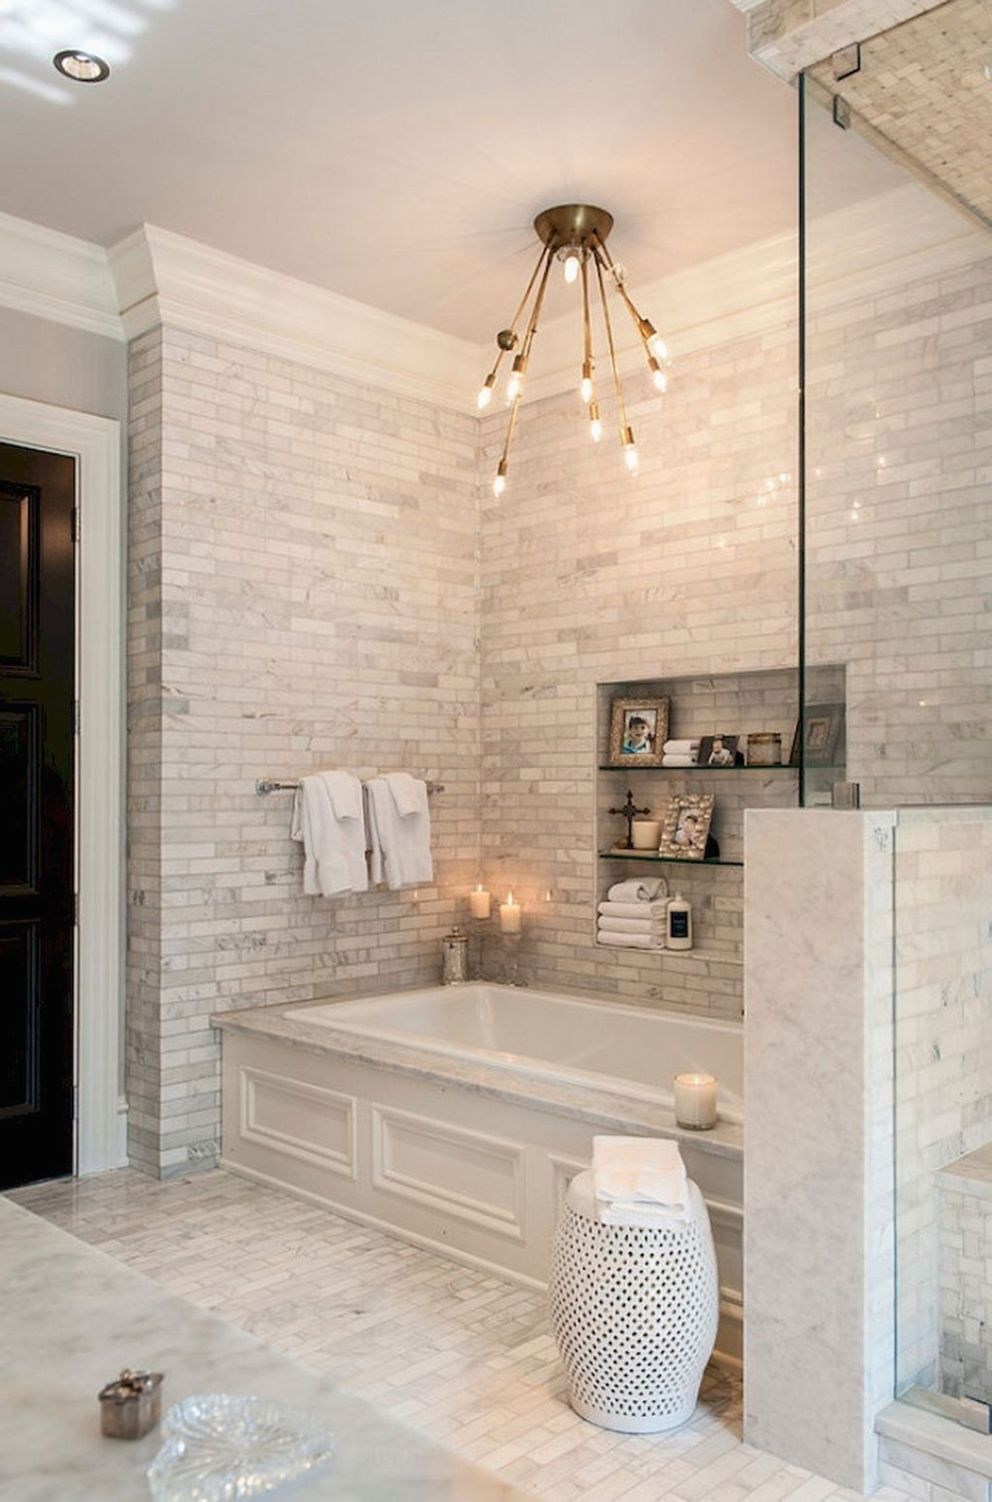 Remodel Bathroom Near Me | Another Home Image Ideas